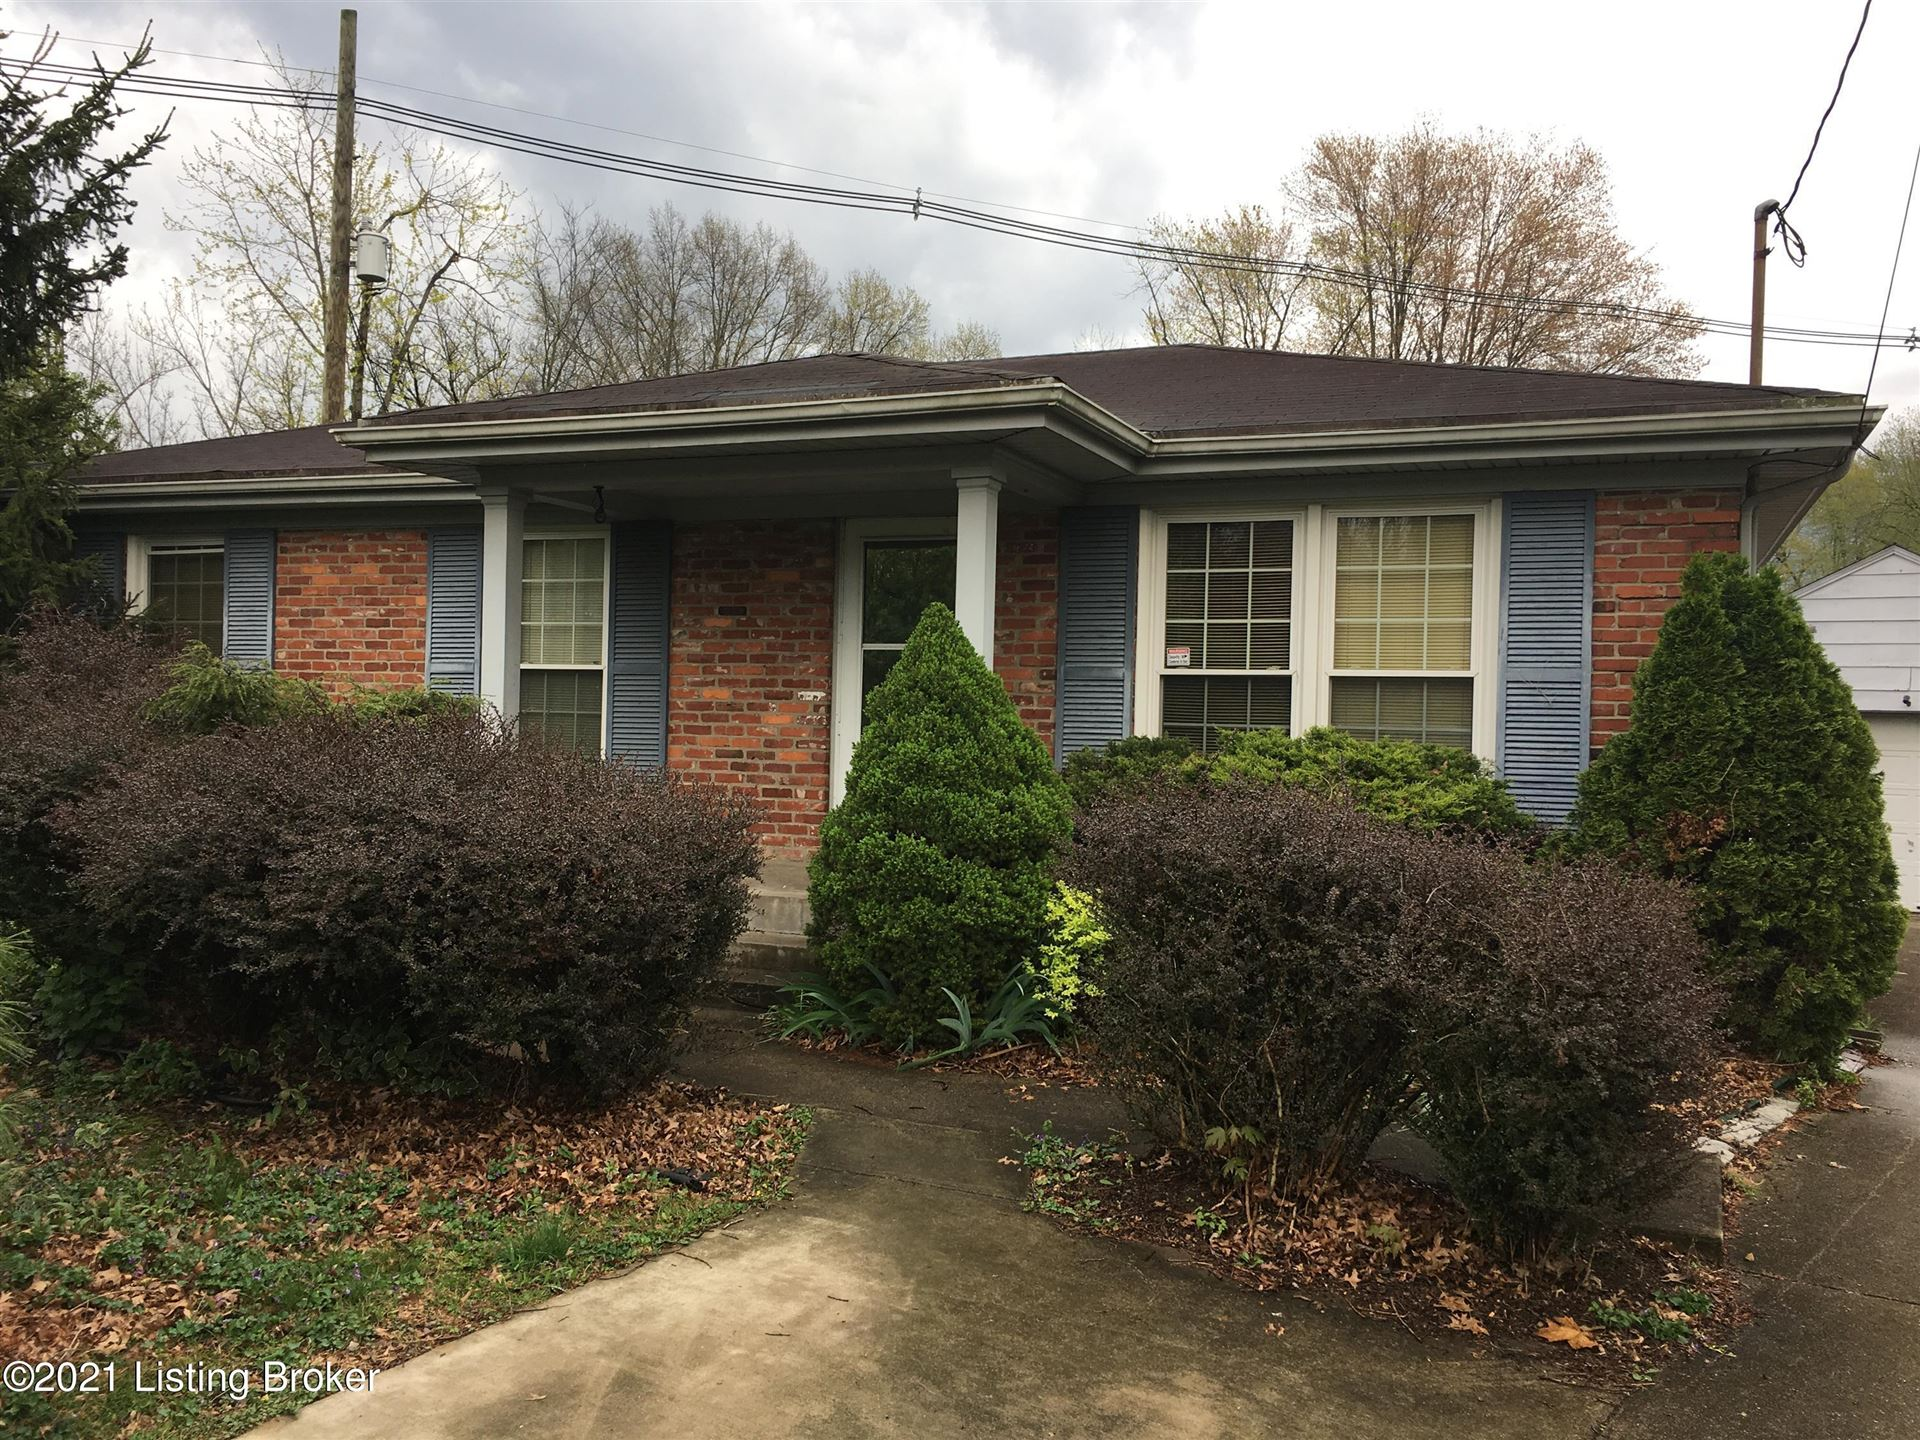 Photo for 205 S Evergreen Rd, Louisville, KY 40243 (MLS # 1579118)